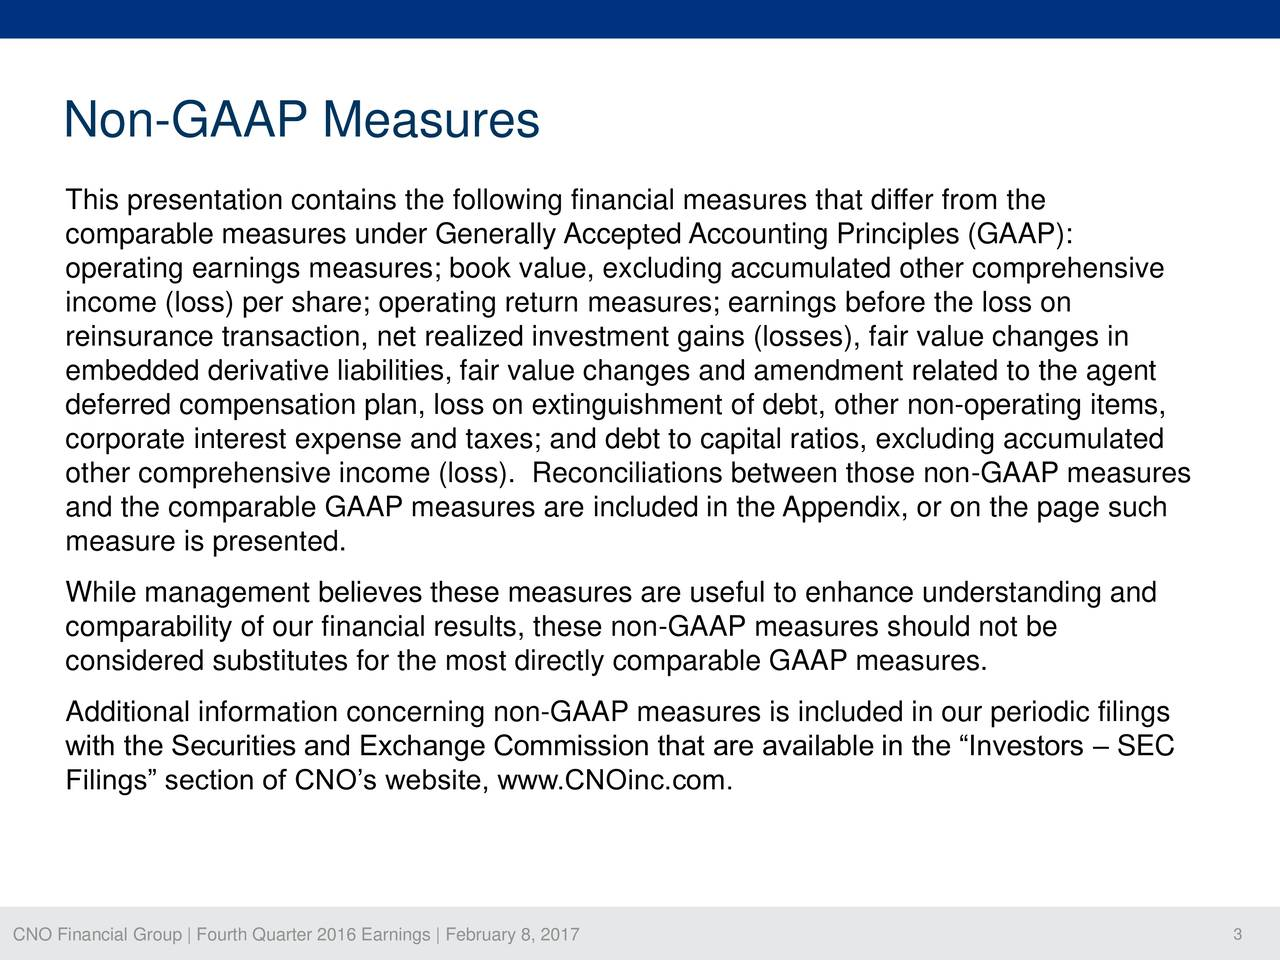 This presentation contains the following financial measures that differ from the comparable measures under Generally Accepted Accounting Principles (GAAP): operating earnings measures; book value, excluding accumulated other comprehensive income (loss) per share; operating return measures; earnings before the loss on reinsurance transaction, net realized investment gains (losses), fair value changes in embedded derivative liabilities, fair value changes and amendment related to the agent deferred compensation plan, loss on extinguishment of debt, other non-operating items, corporate interest expense and taxes; and debt to capital ratios, excluding accumulated other comprehensive income (loss). Reconciliations between those non-GAAP measures and the comparable GAAP measures are included in the Appendix, or on the page such measure is presented. While management believes these measures are useful to enhance understanding and comparability of our financial results, these non-GAAP measures should not be considered substitutes for the most directly comparable GAAP measures. Additional information concerning non-GAAP measures is included in our periodic filings with the Securities and Exchange Commission that are available in the Investors  SEC Filings section of CNOs website, www.CNOinc.com. CNO Financial Group | Fourth Quarter 2016 Earnings | February 8, 2017 3